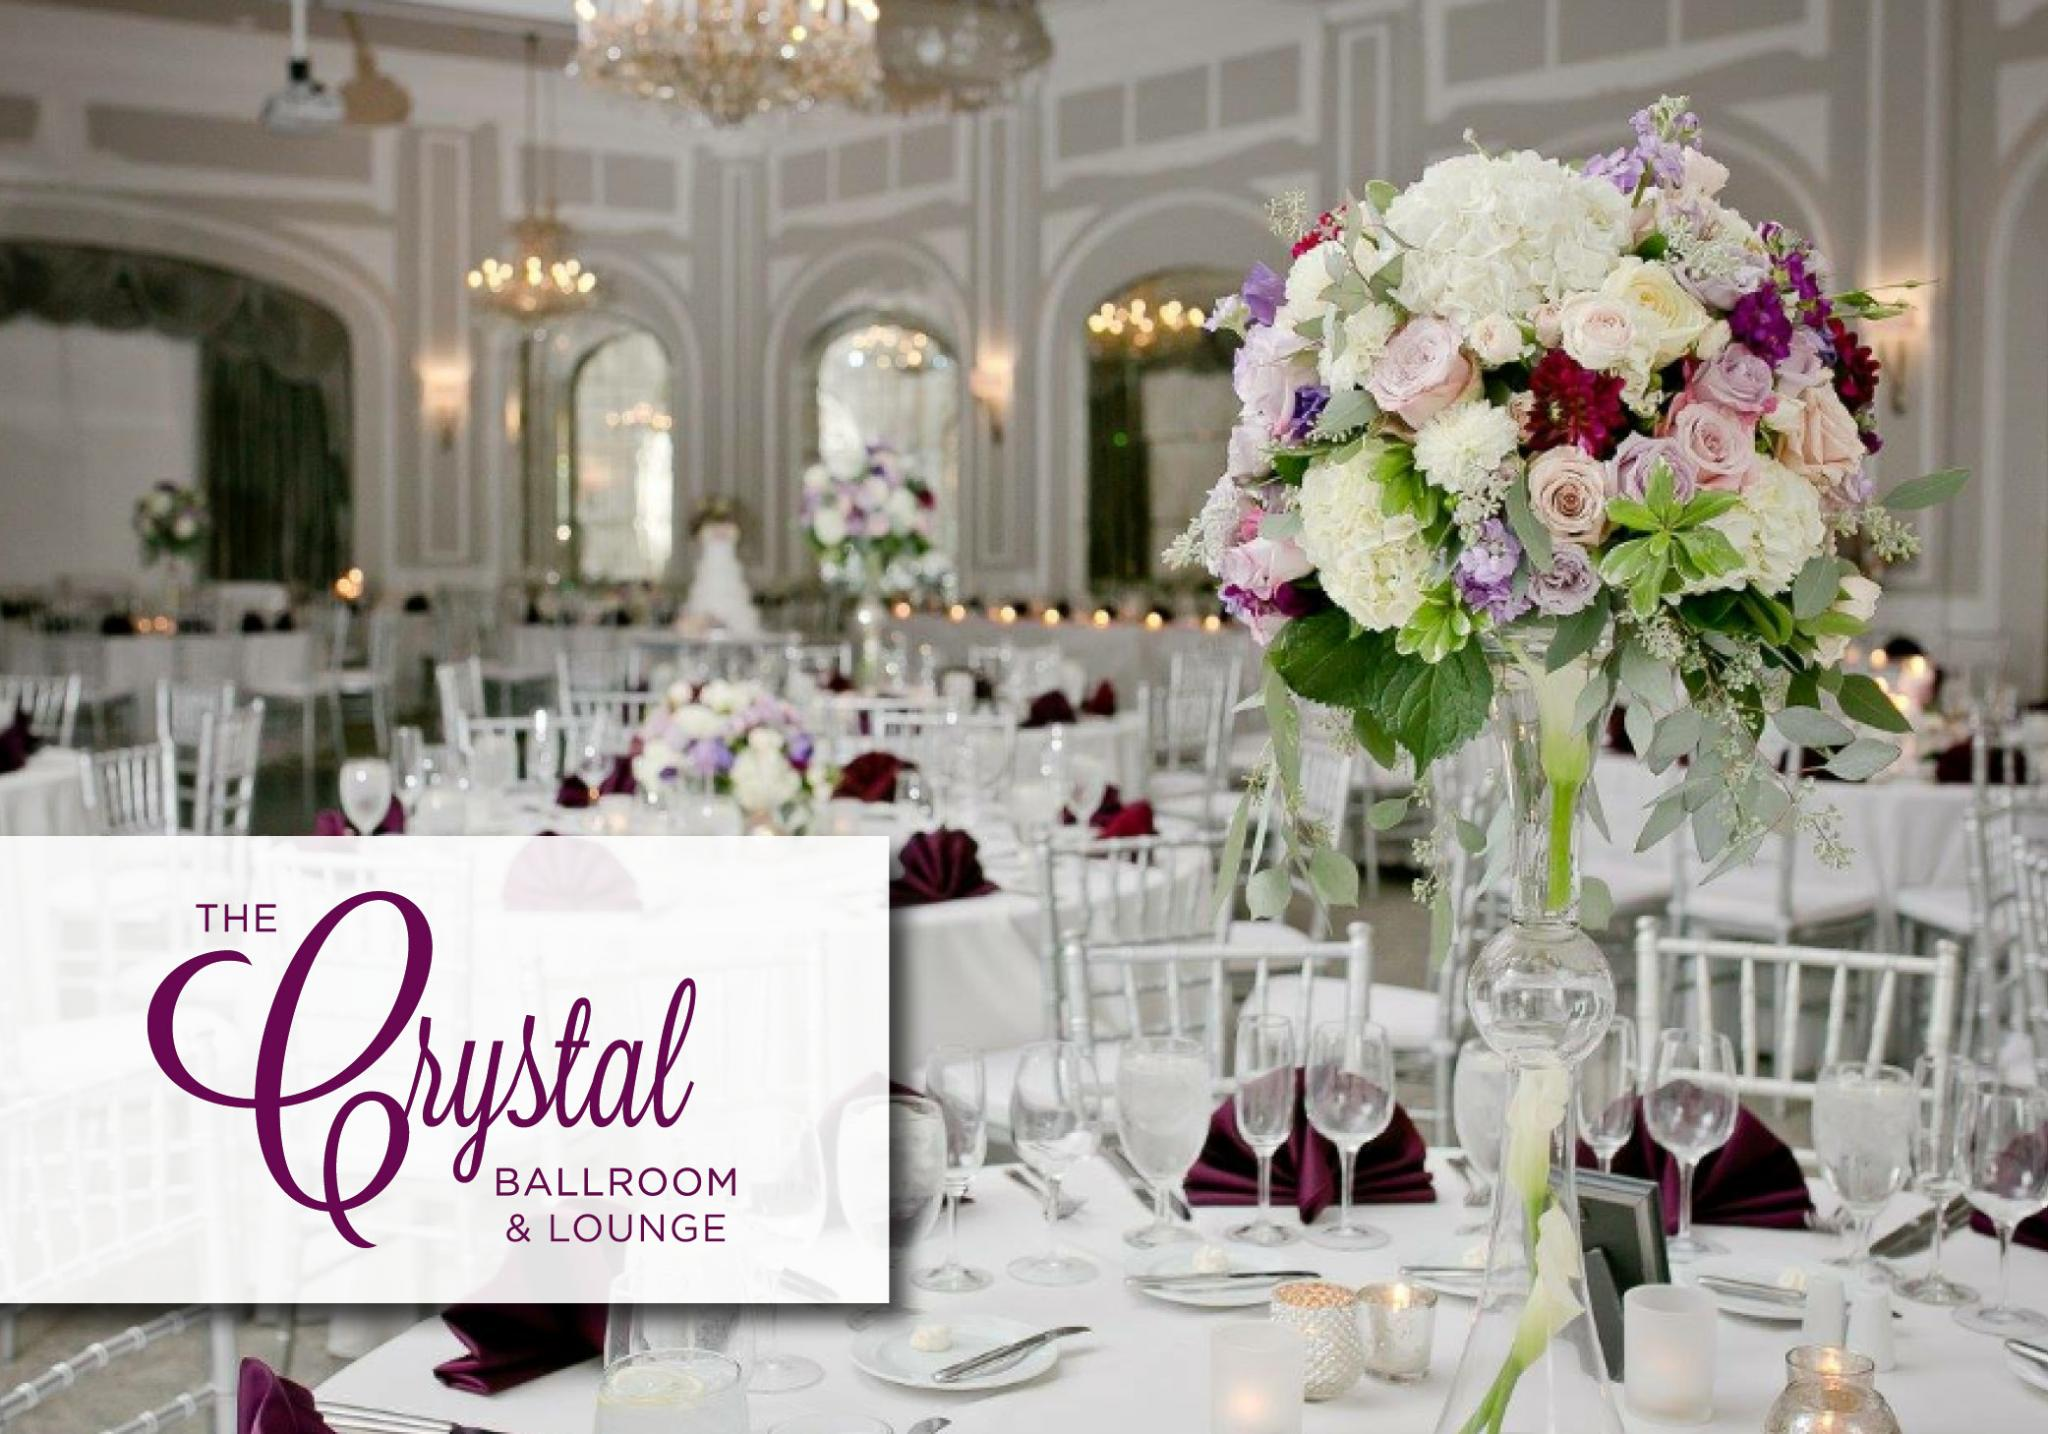 The Crystal Ballroom in Evanston, Illinois